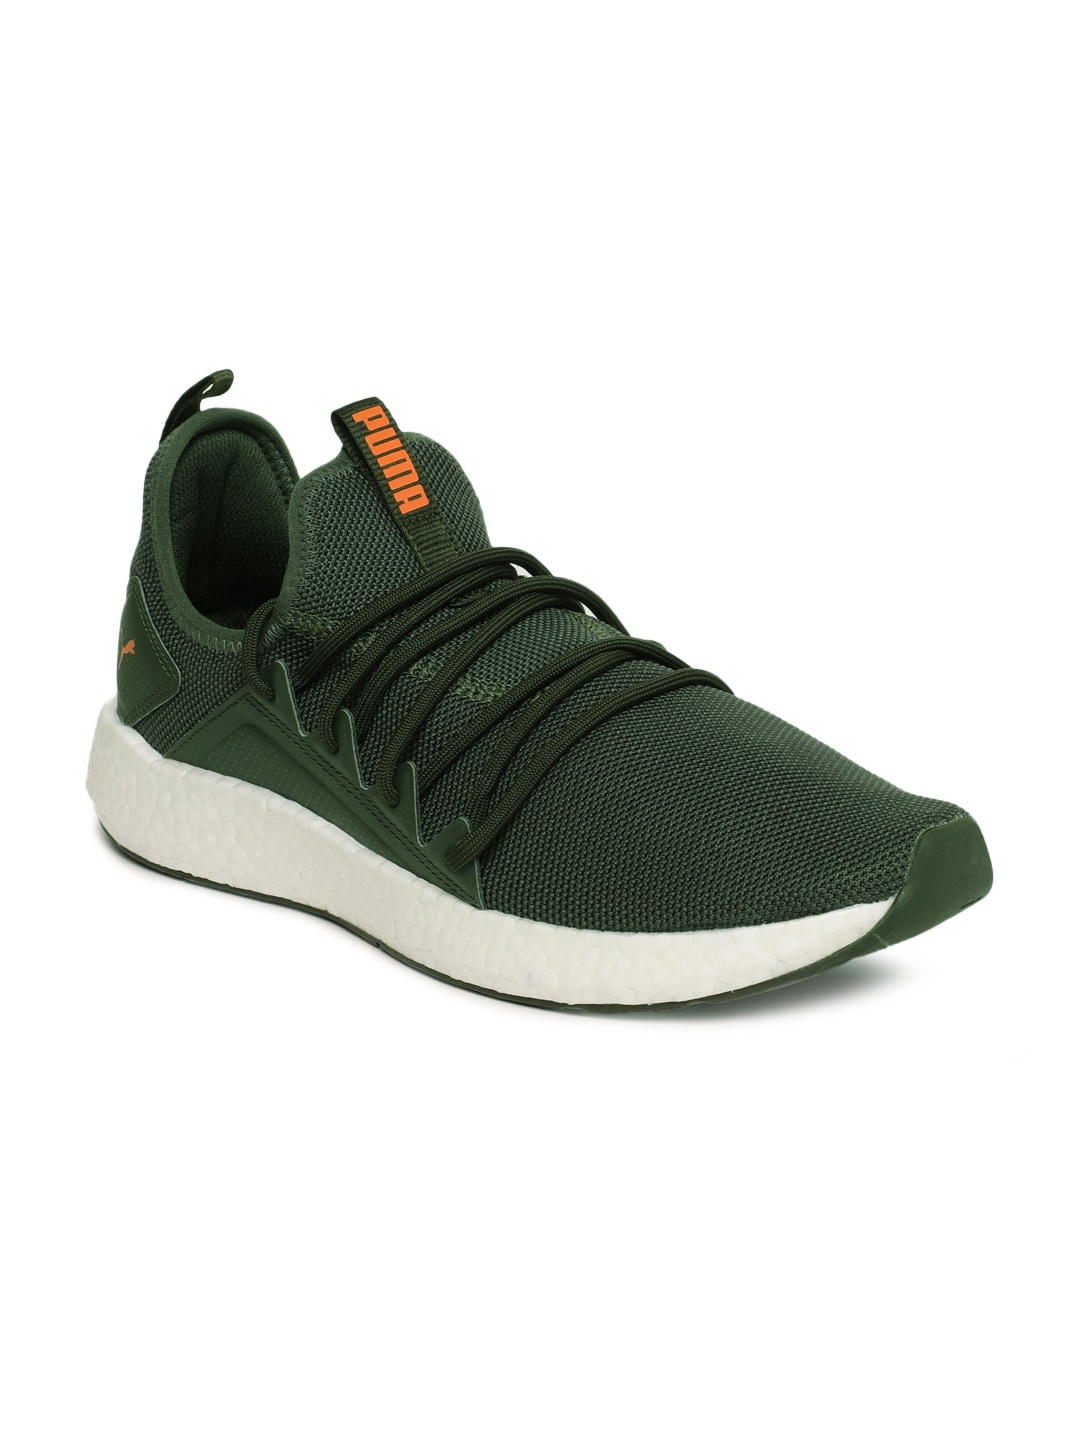 7500d98ceed2 Buy Puma Men Olive Green SPEED RACER Running Shoes - Sports Shoes for Men  8109933